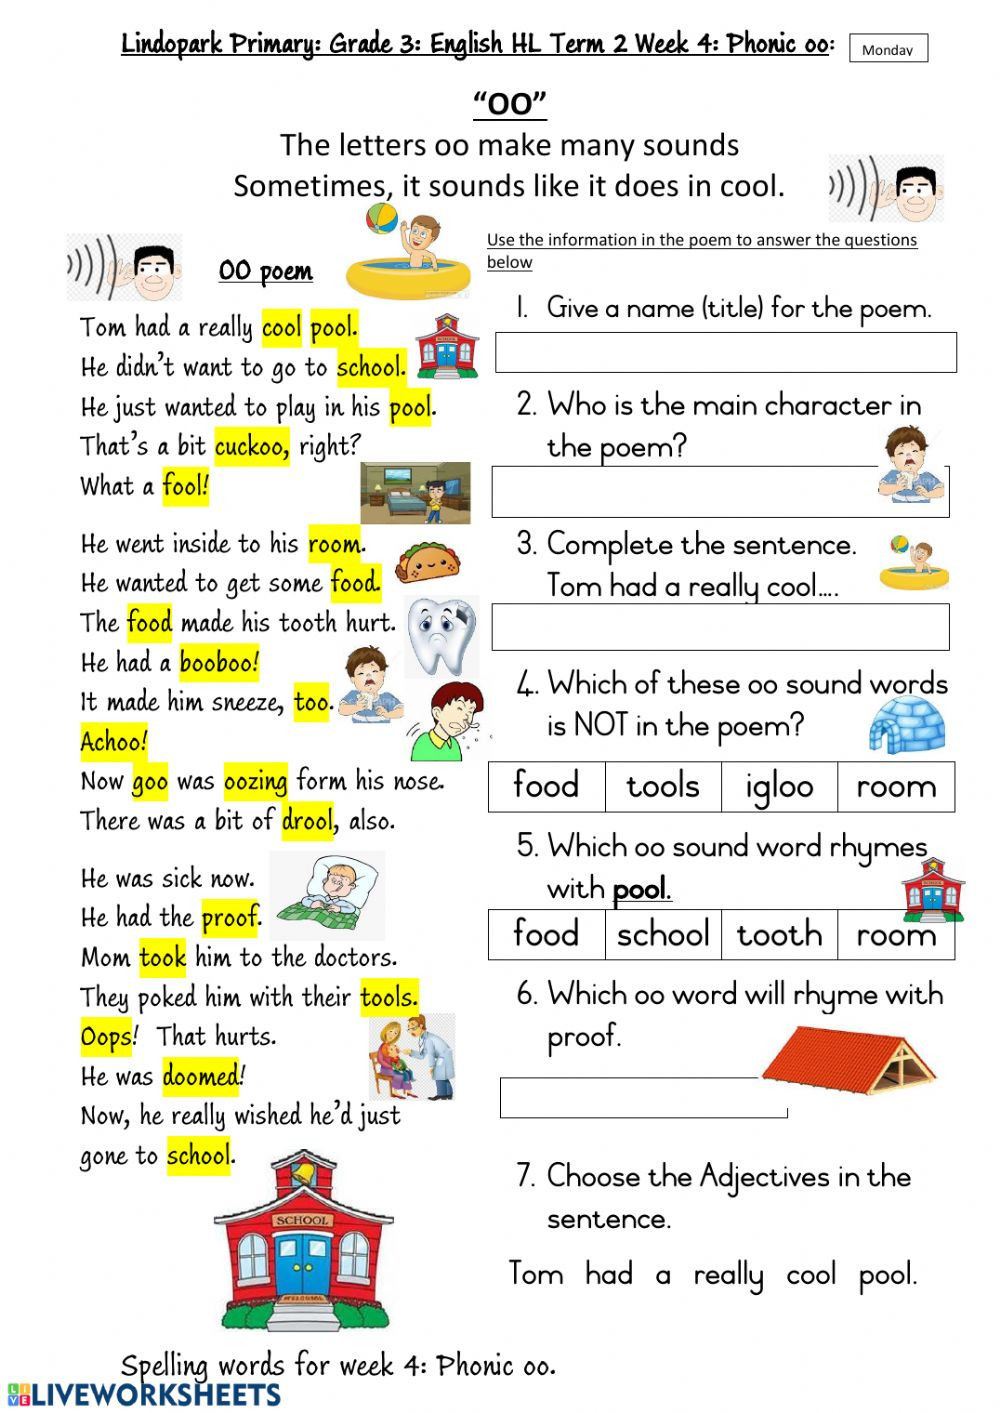 Phonic Worksheets Grade 2 Grade 3 Hl English Term 2 Week 4 Phonic Oo Worksheet 1